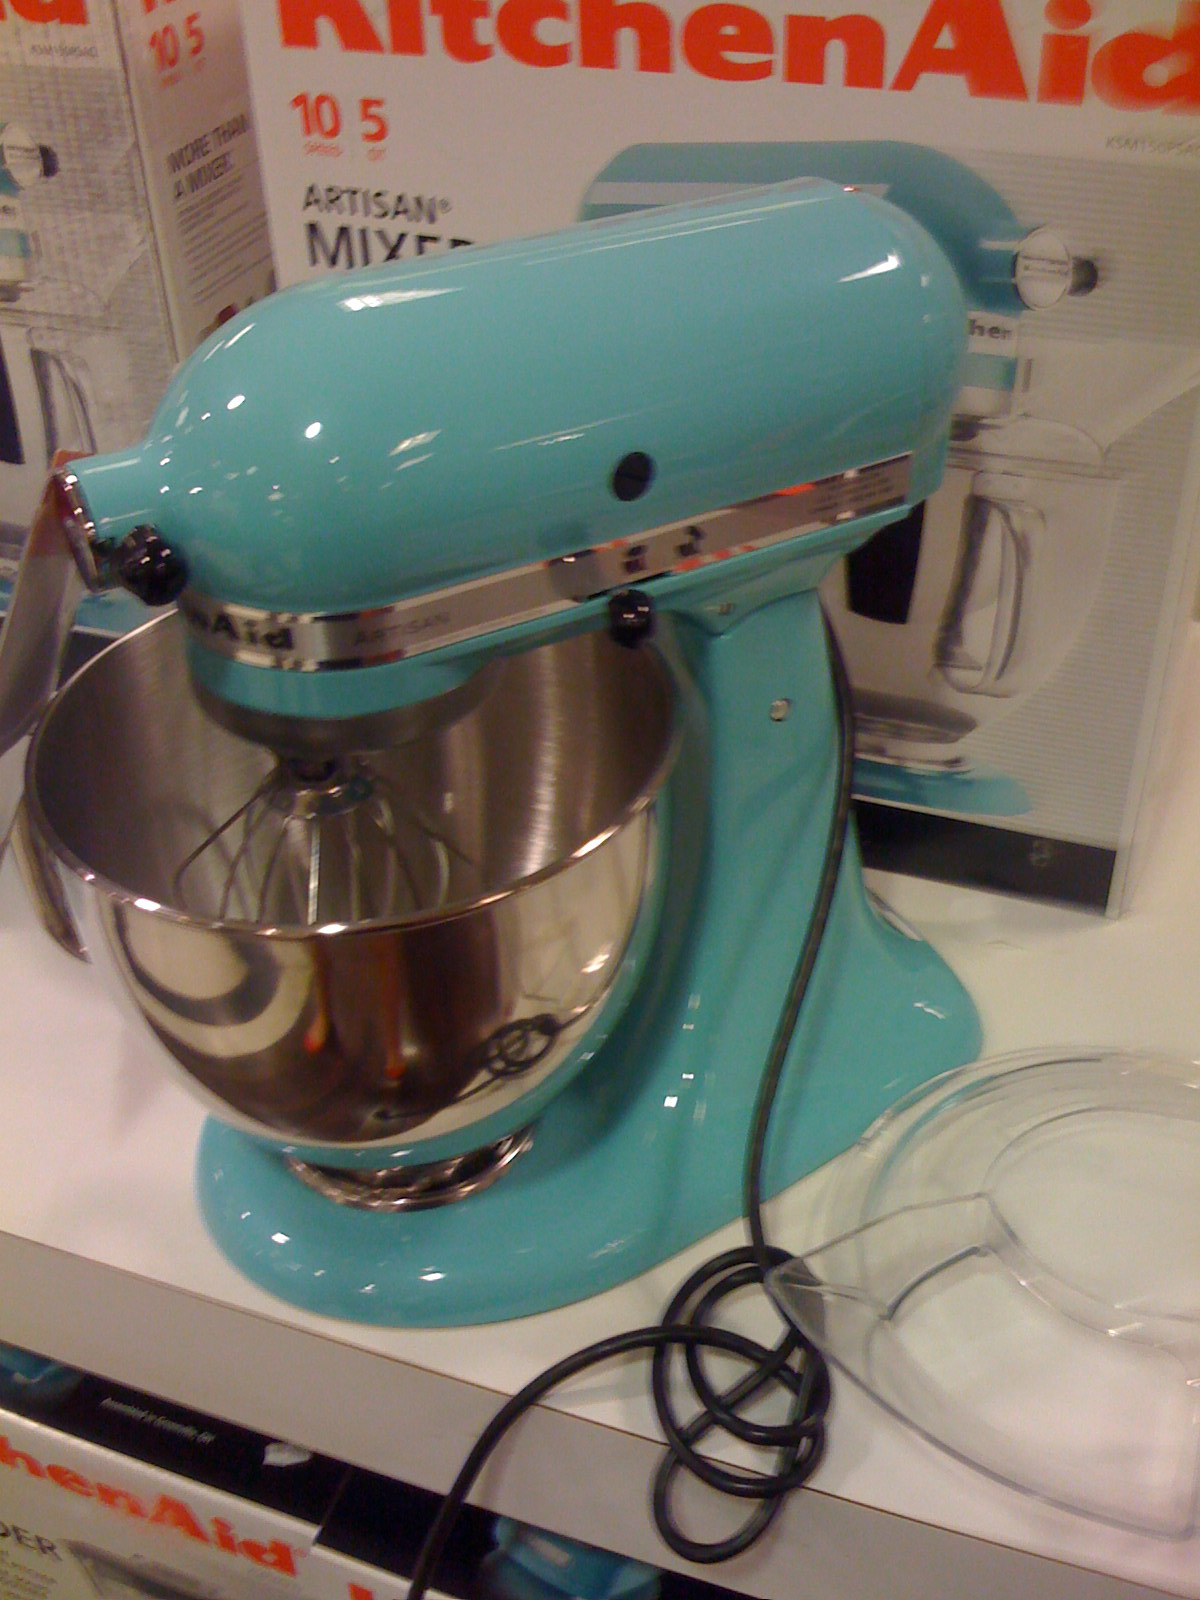 KitchenAid Martha Stewart Blue Collection Kitchen